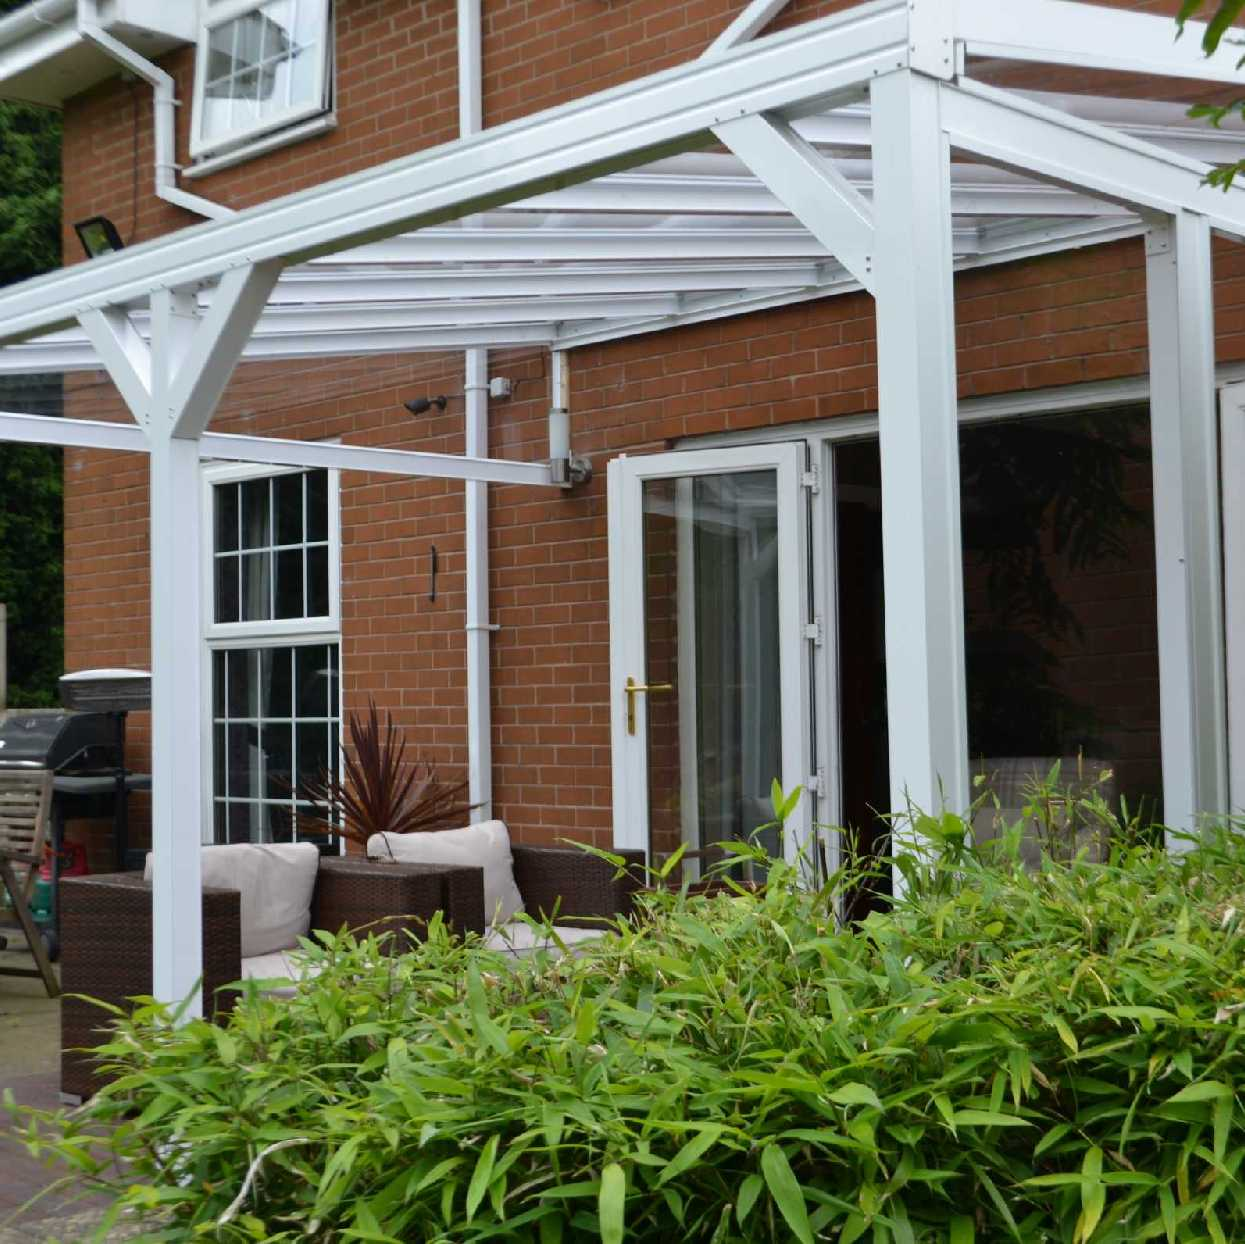 Omega Smart Lean-To Canopy with 6mm Glass Clear Plate Polycarbonate Glazing - 9.0m (W) x 4.0m (P), (4) Supporting Posts from Omega Build